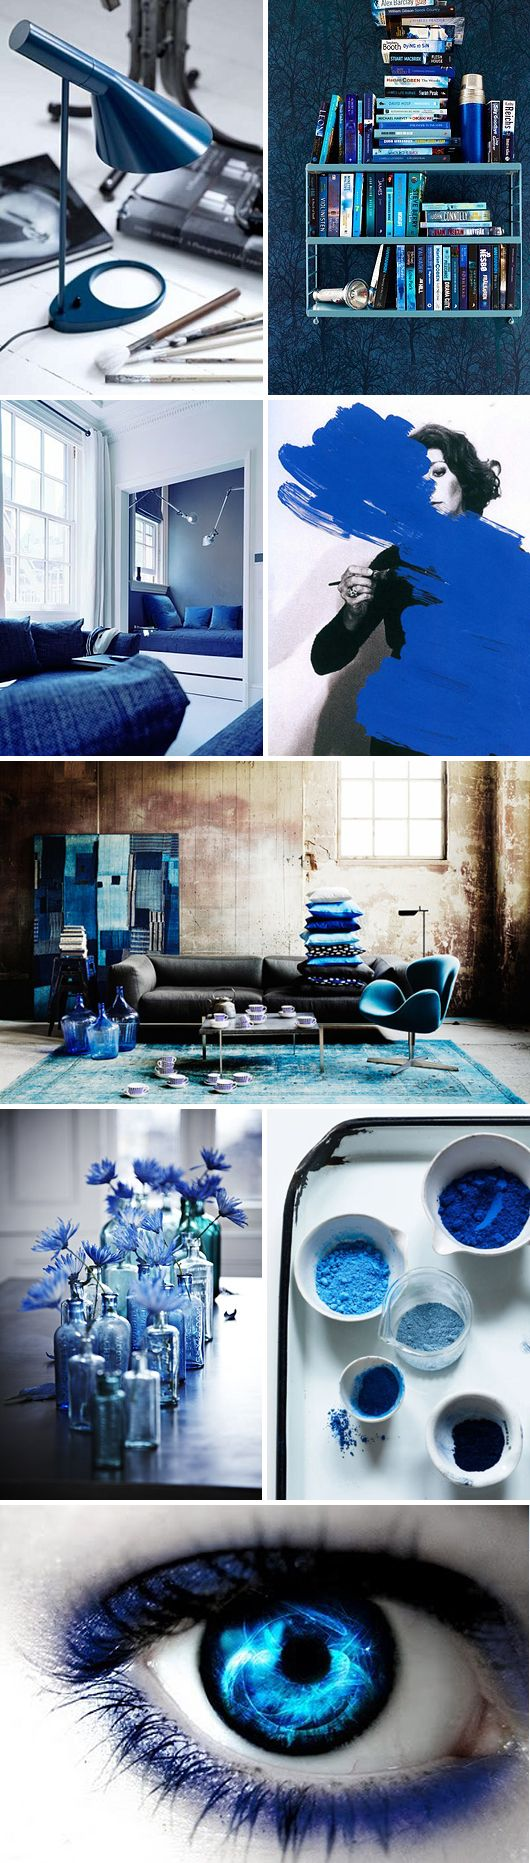 "SHE LOVES INTERIOR DESIGN! She can build a room around any color or object. ""Scandinavian Interior Design Style / Blue mood board"""